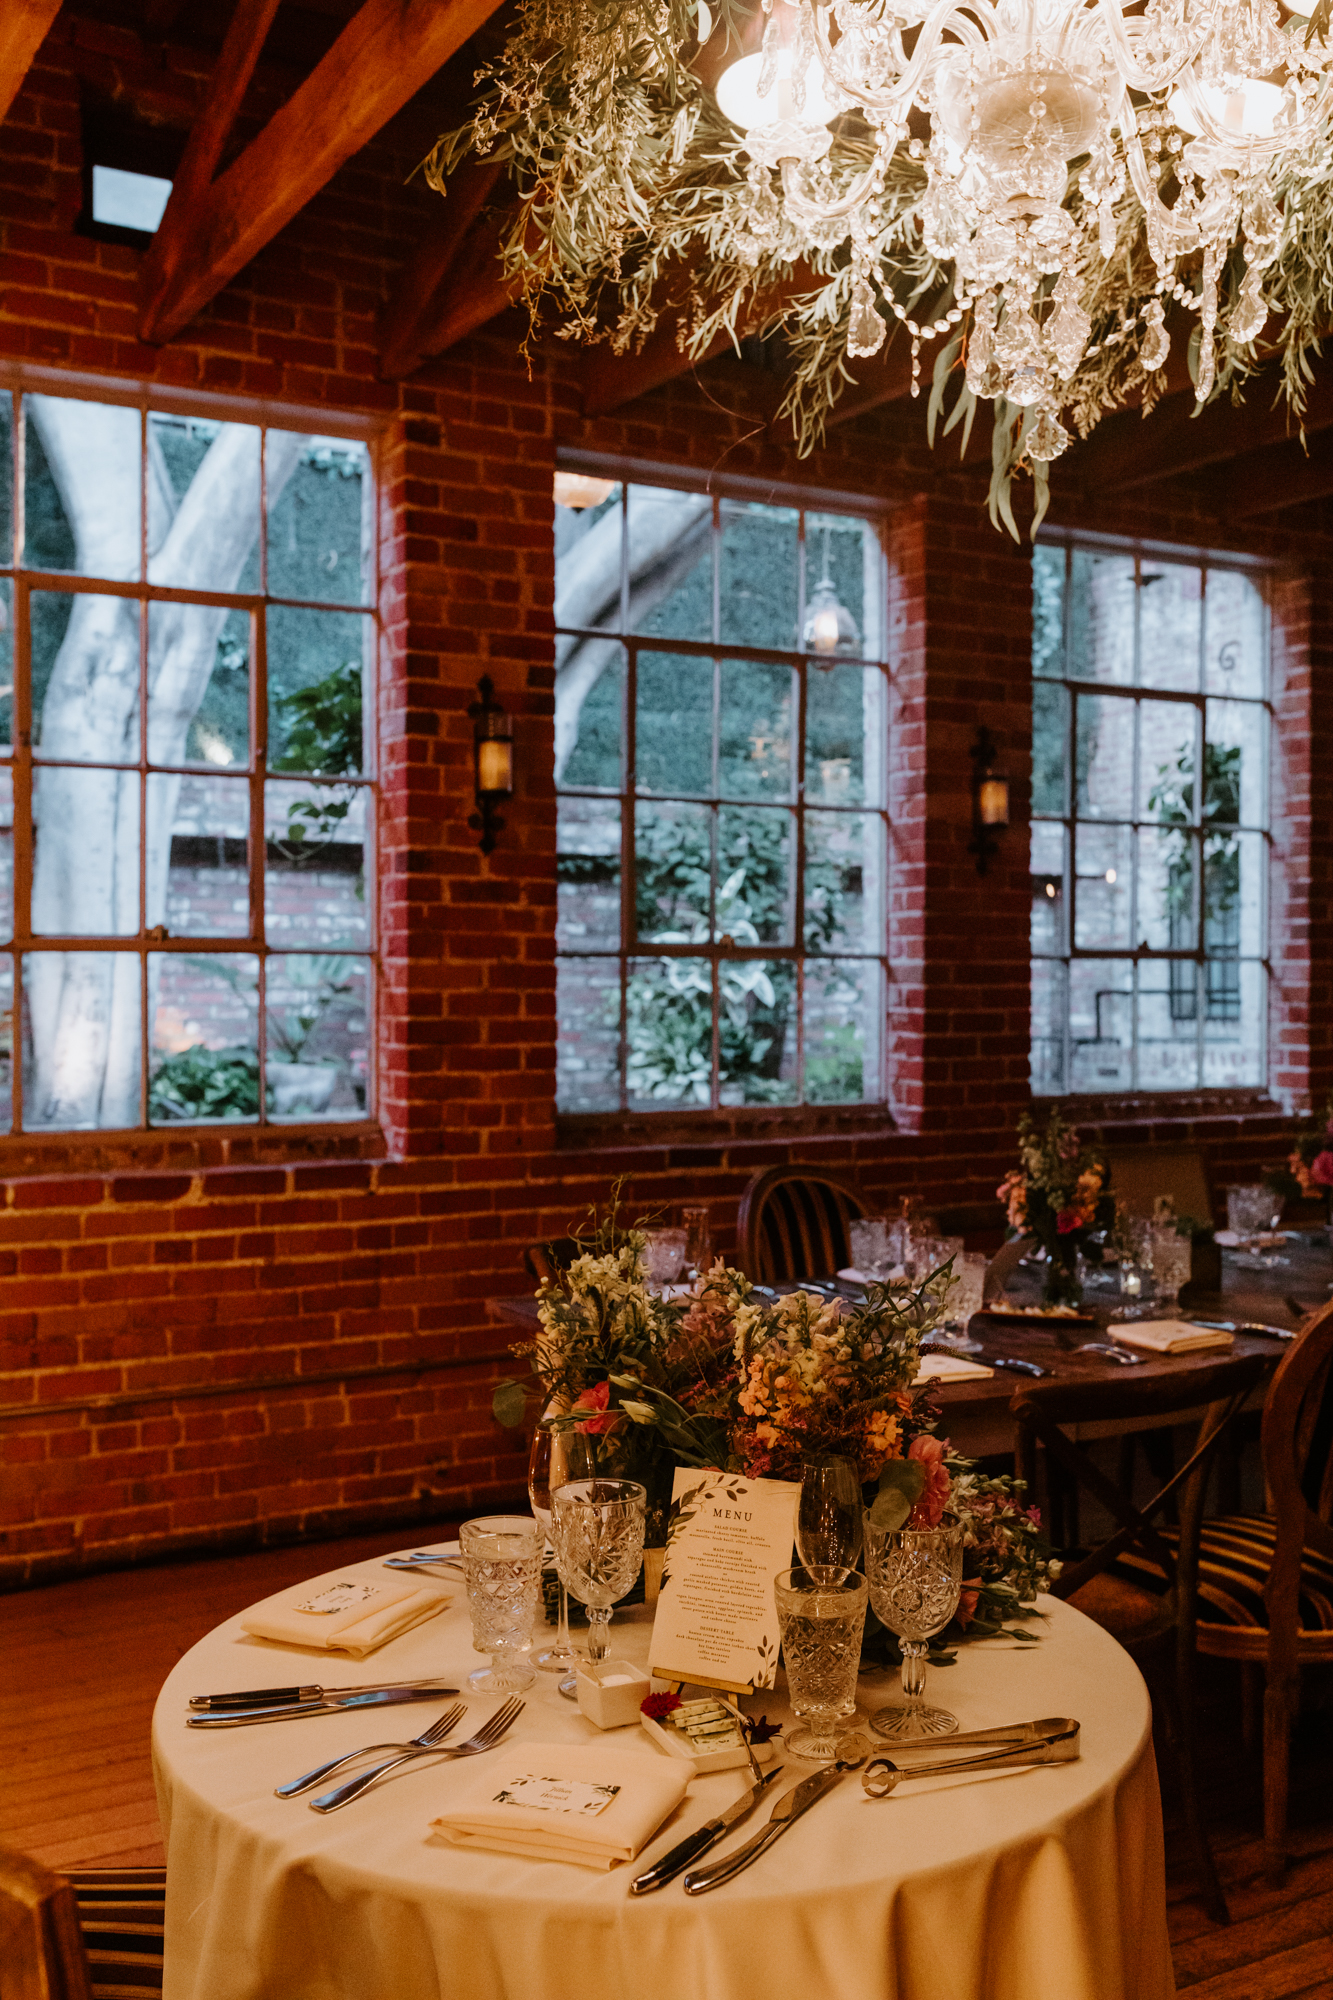 Romantic string light edison bulb rustic wildflower succulent reception inspiration | Carondelet House Wedding in Downtown Los Angeles | Tida Svy Photography | www.tidasvy.com